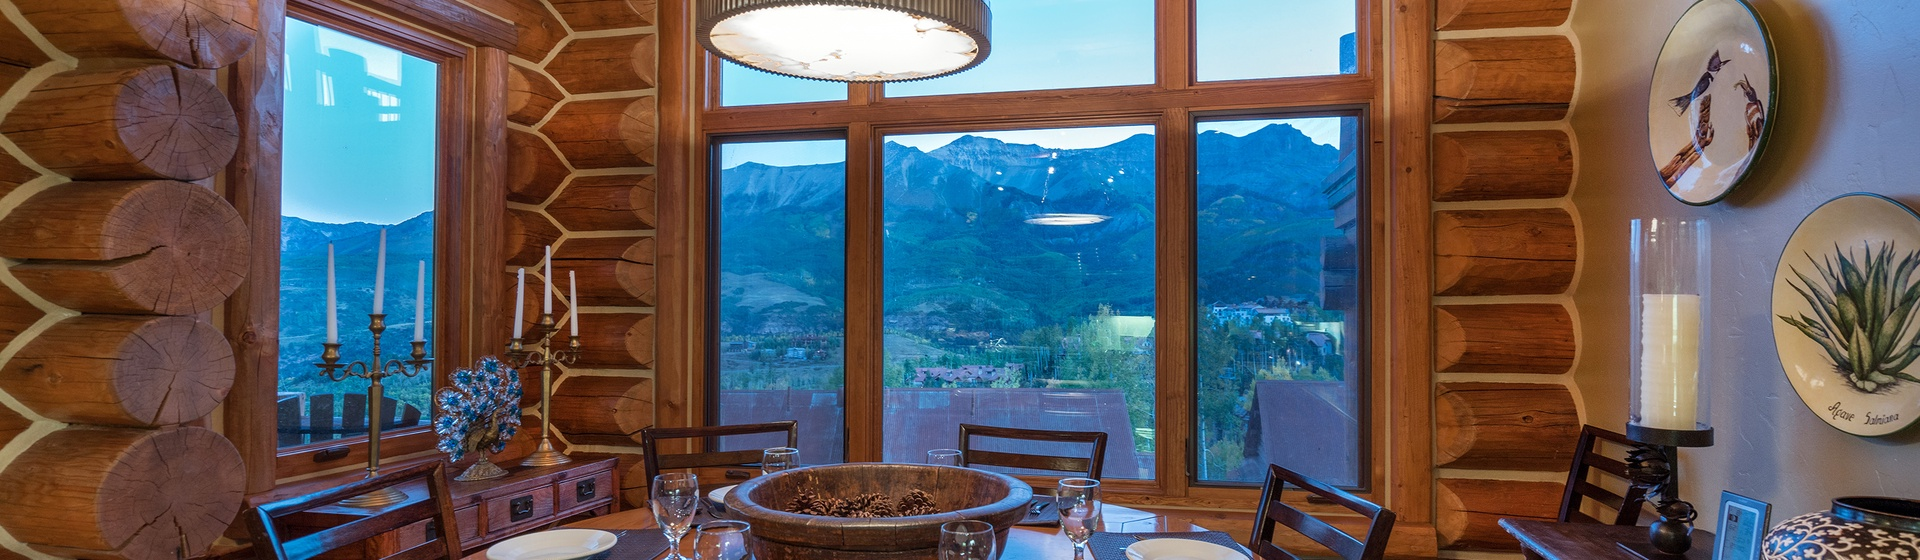 8-MountainVillage-Tristant115-dining-WEB.jpg